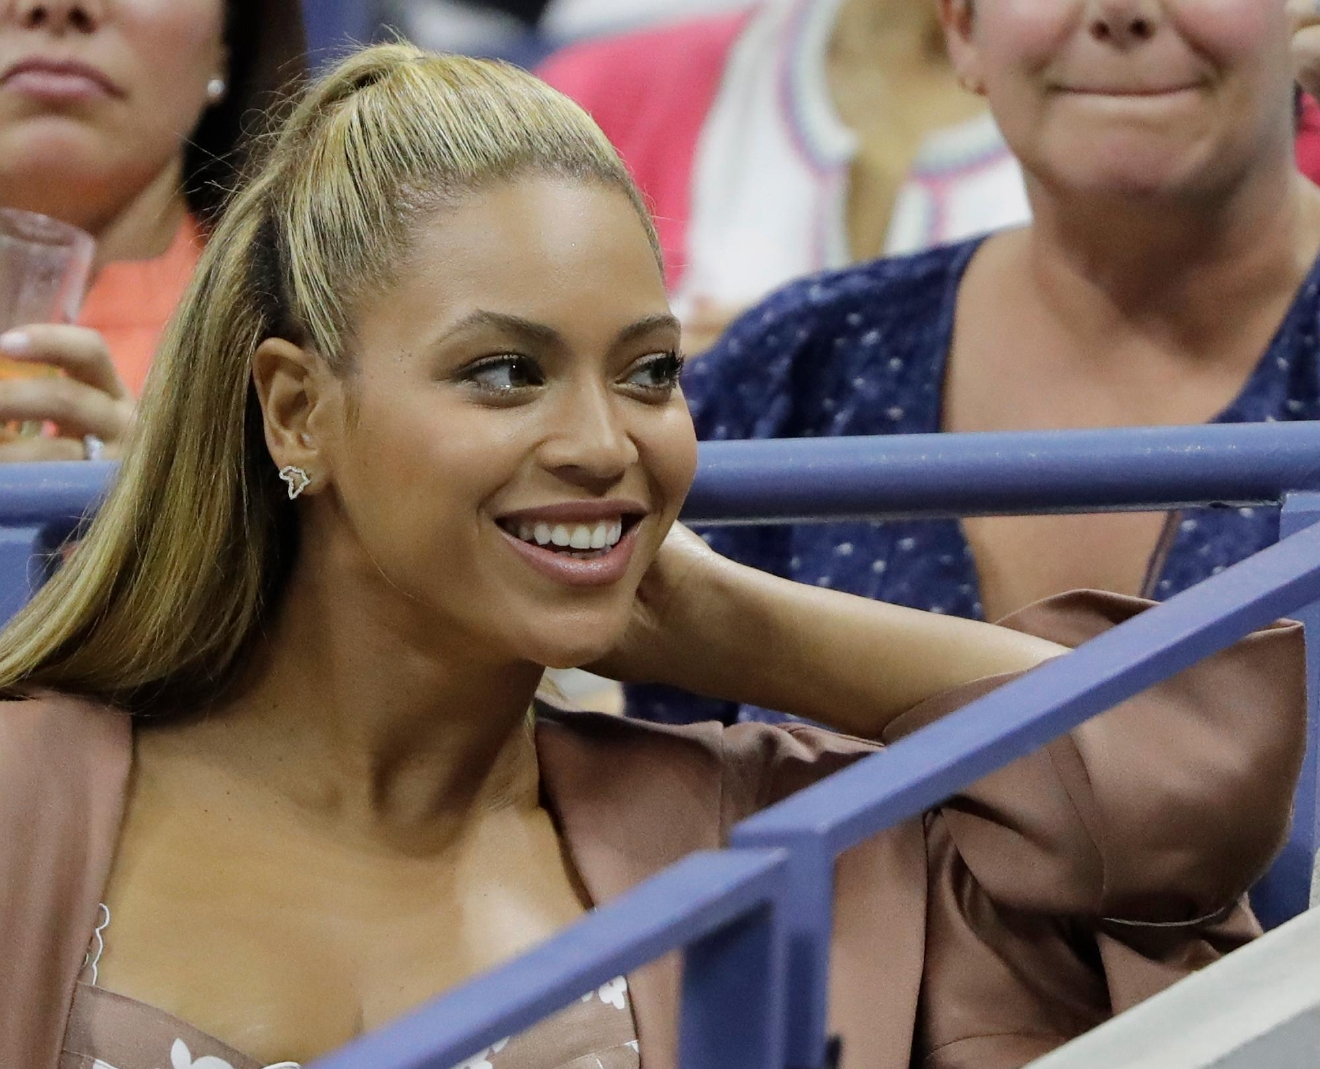 Beyonce watches the match between Serena Williams and Vania King during the second round of the U.S. Open tennis tournament, Thursday, Sept. 1, 2016, in New York. (AP Photo/Darron Cummings)